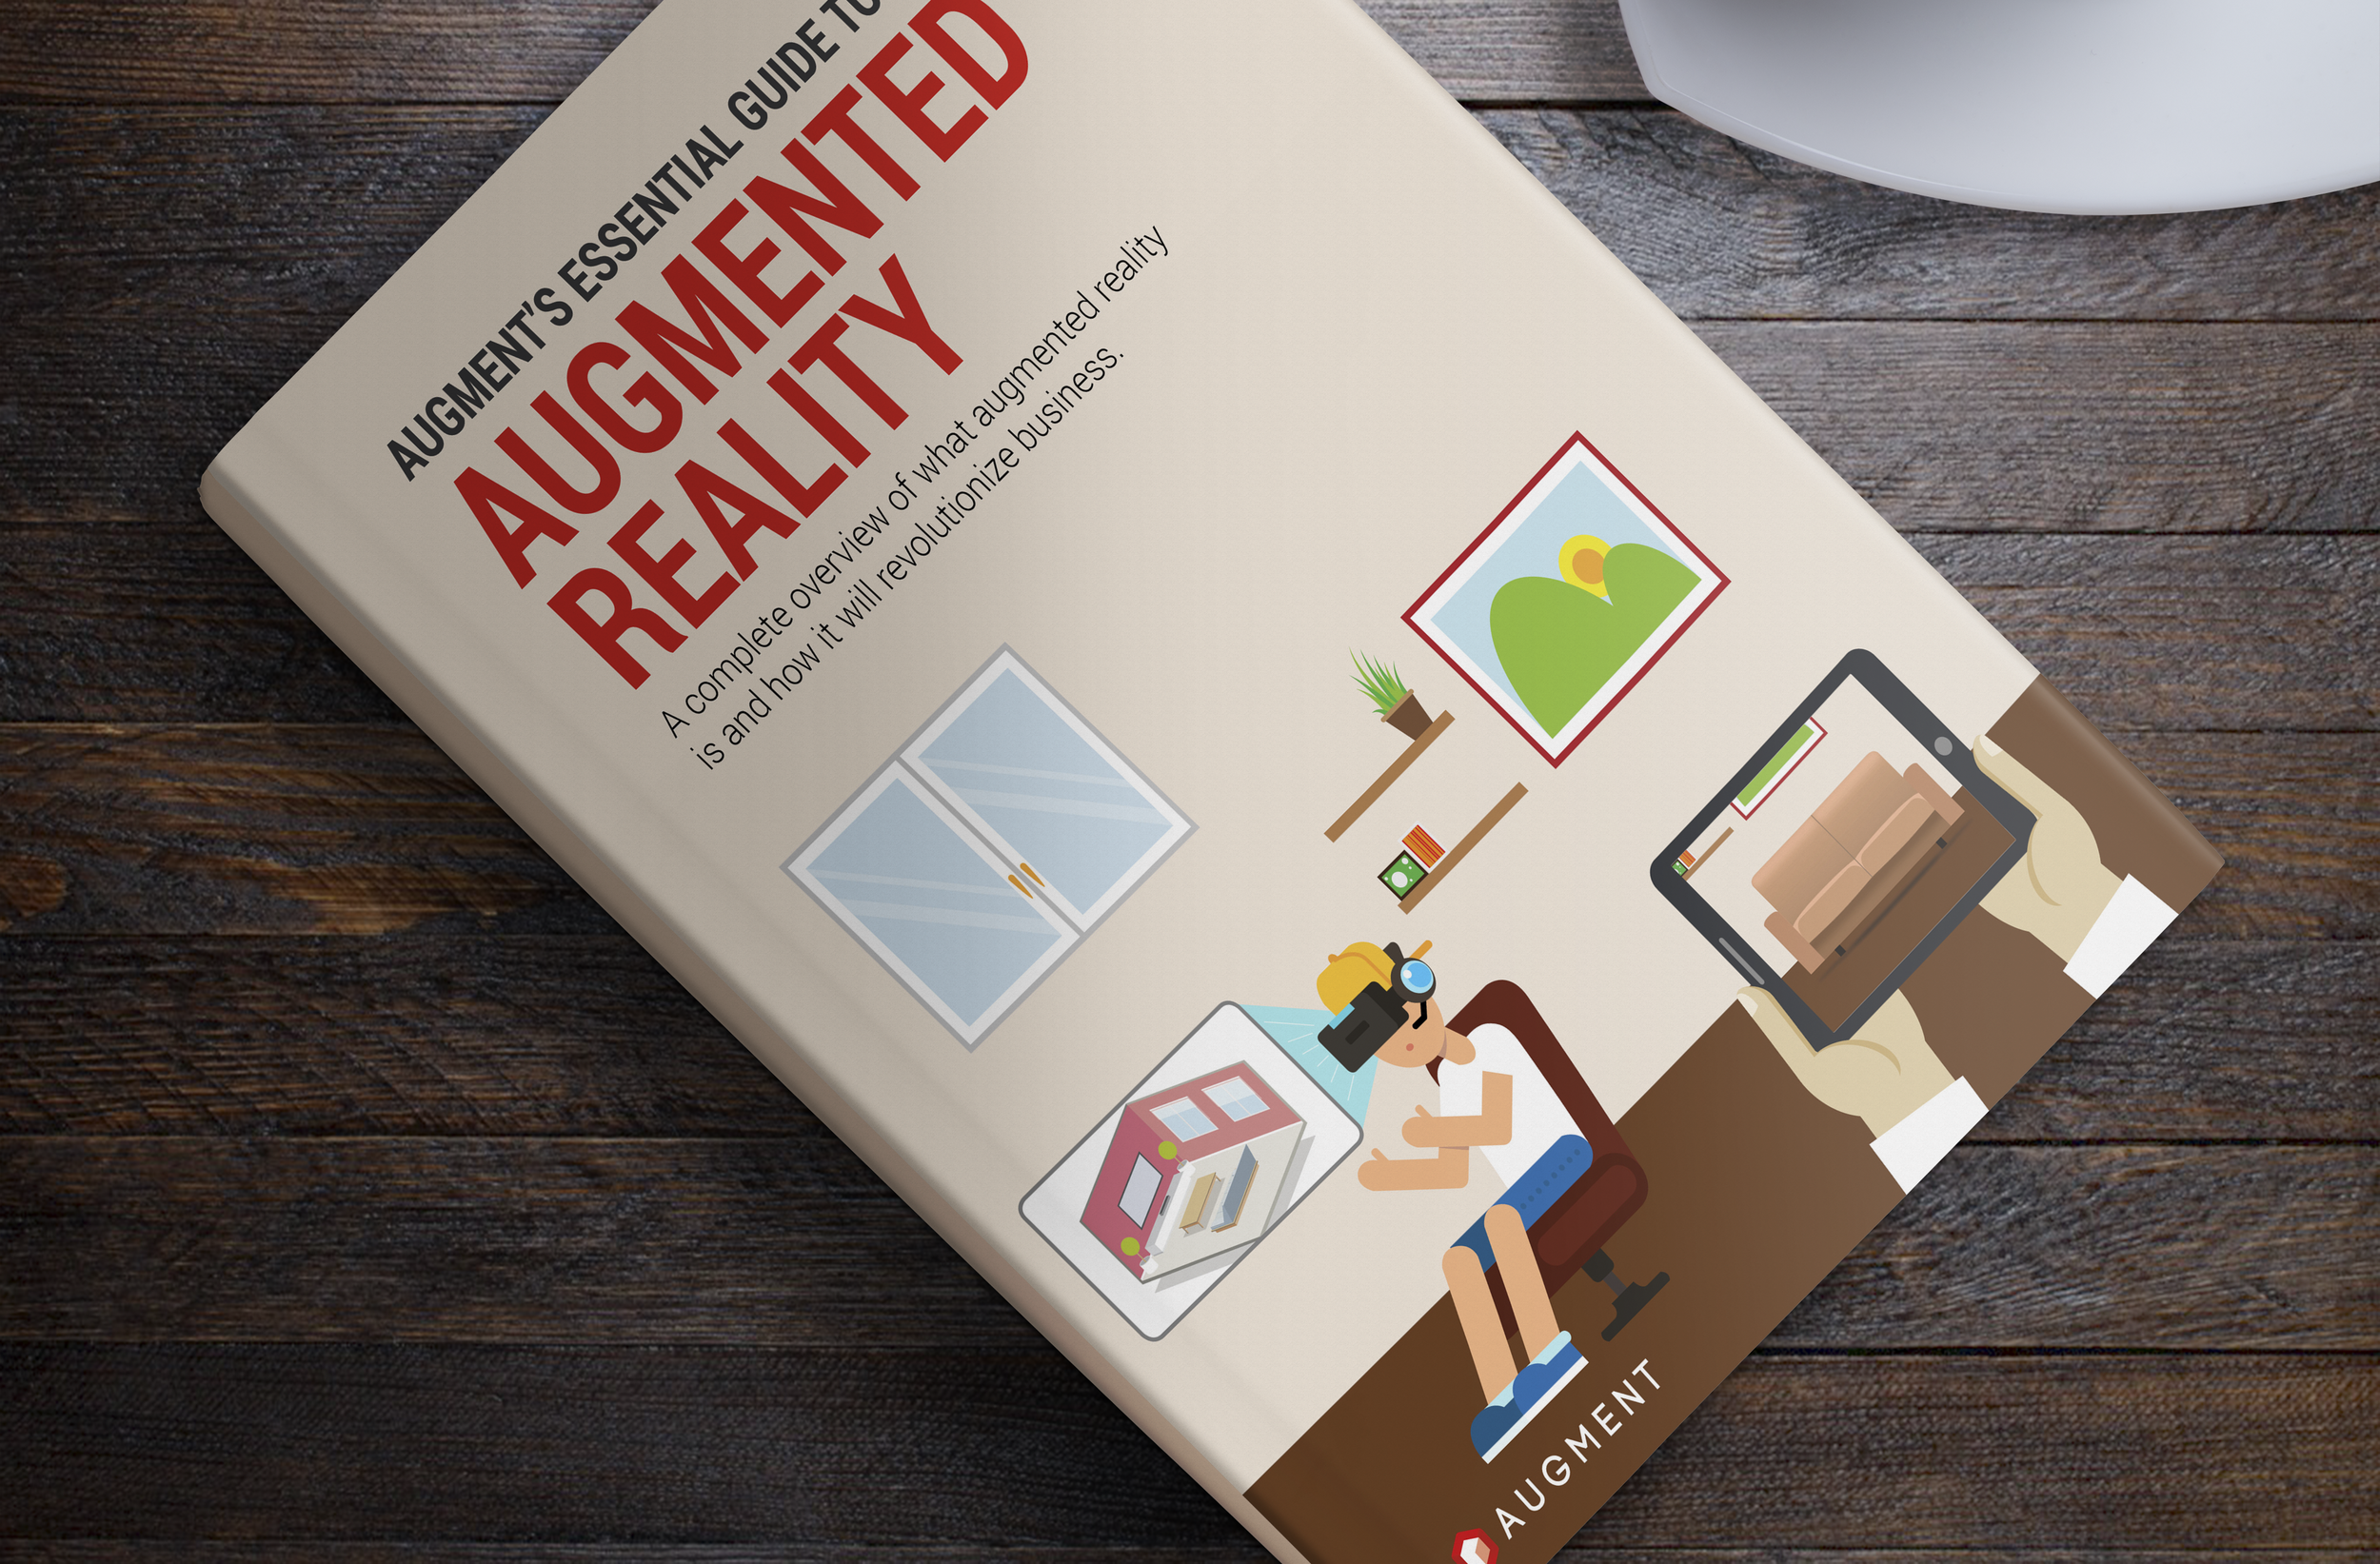 Copy of Augment's Guide to Augmented Reality [eBook]